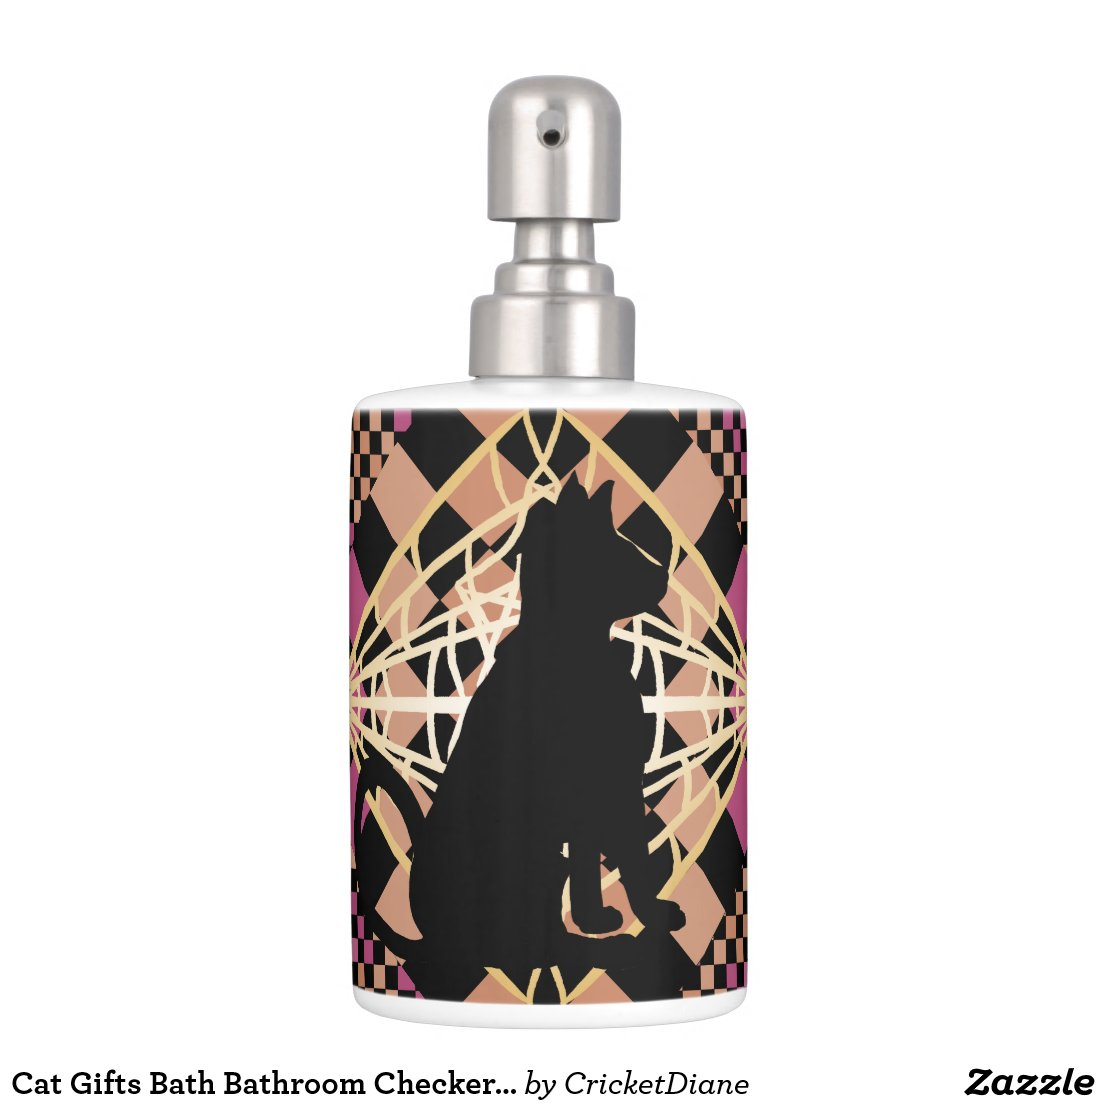 Cat Gifts Bath Bathroom Checkerboard CricketDiane Bath Set